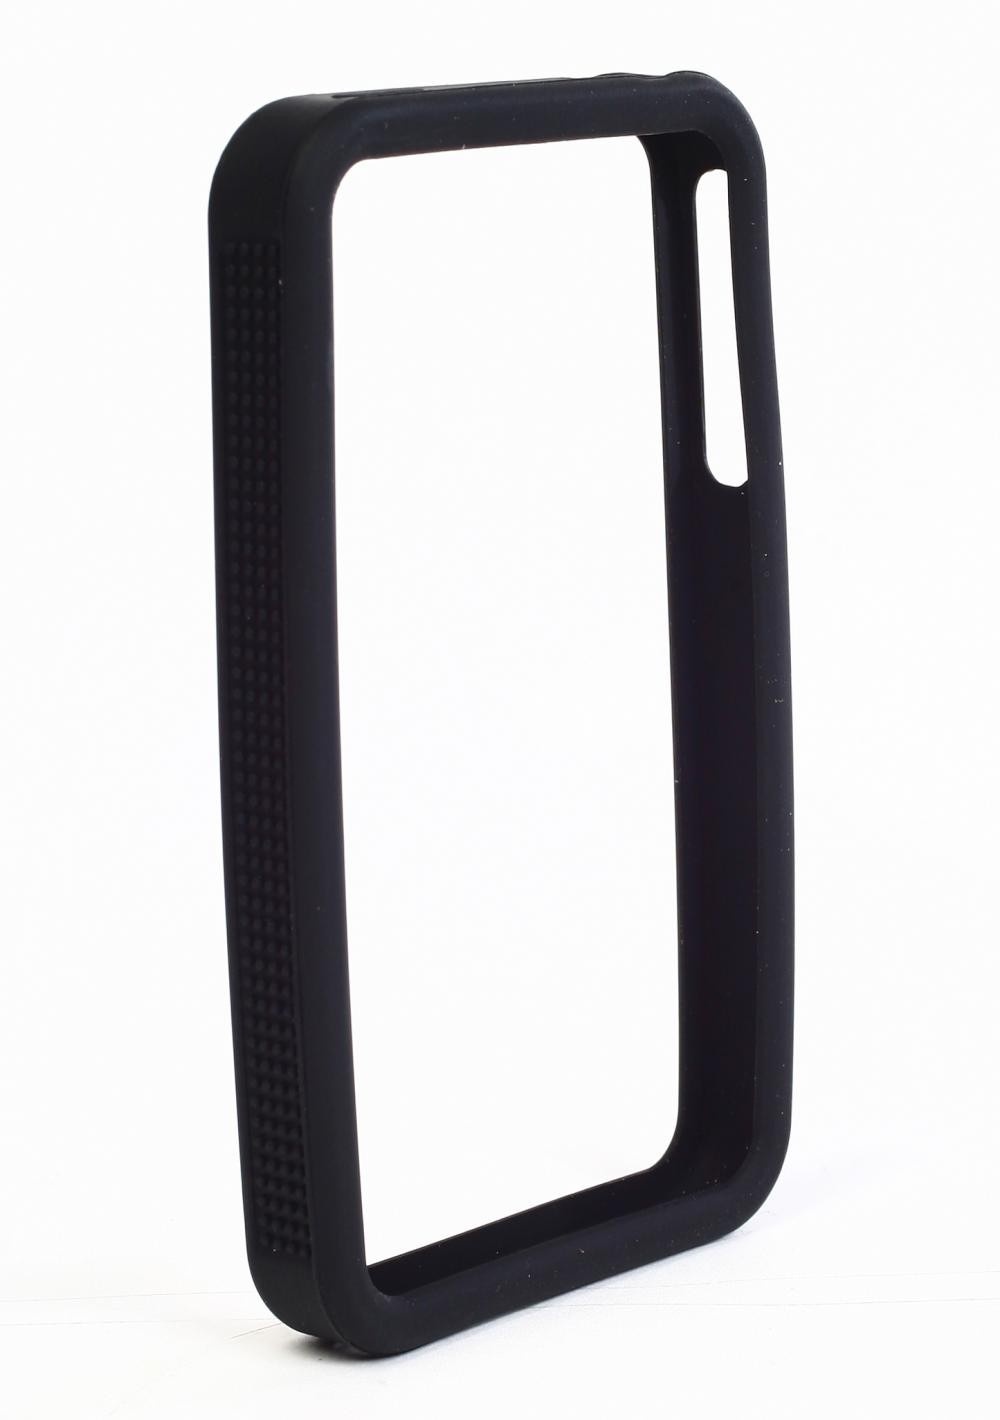 reputable site cecd7 10189 IPS225 Secure Grip Rubber Bumper Frame for iPhone 4™ - Black